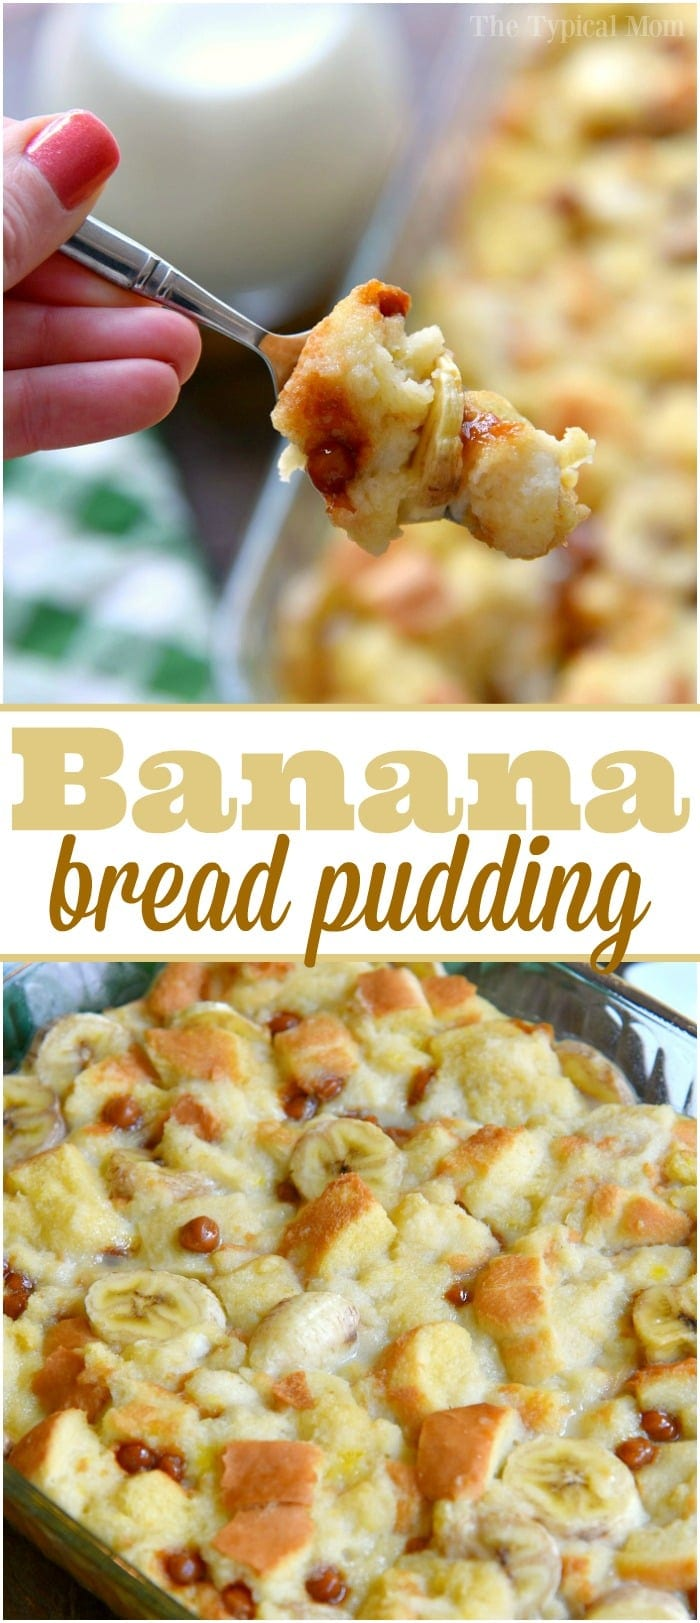 This easy banana bread pudding recipe is so amazing!! Like a dessert or brunch casserole made with overripe bananas and caramel bits if you want it to be really out of this world. You have to try this recipe for your family or to bring to a potluck, I assure you there won't be any left to take home! #banana #bread #pudding #easy #brunch #breakfast #casserole #dessert #overripe #recipe